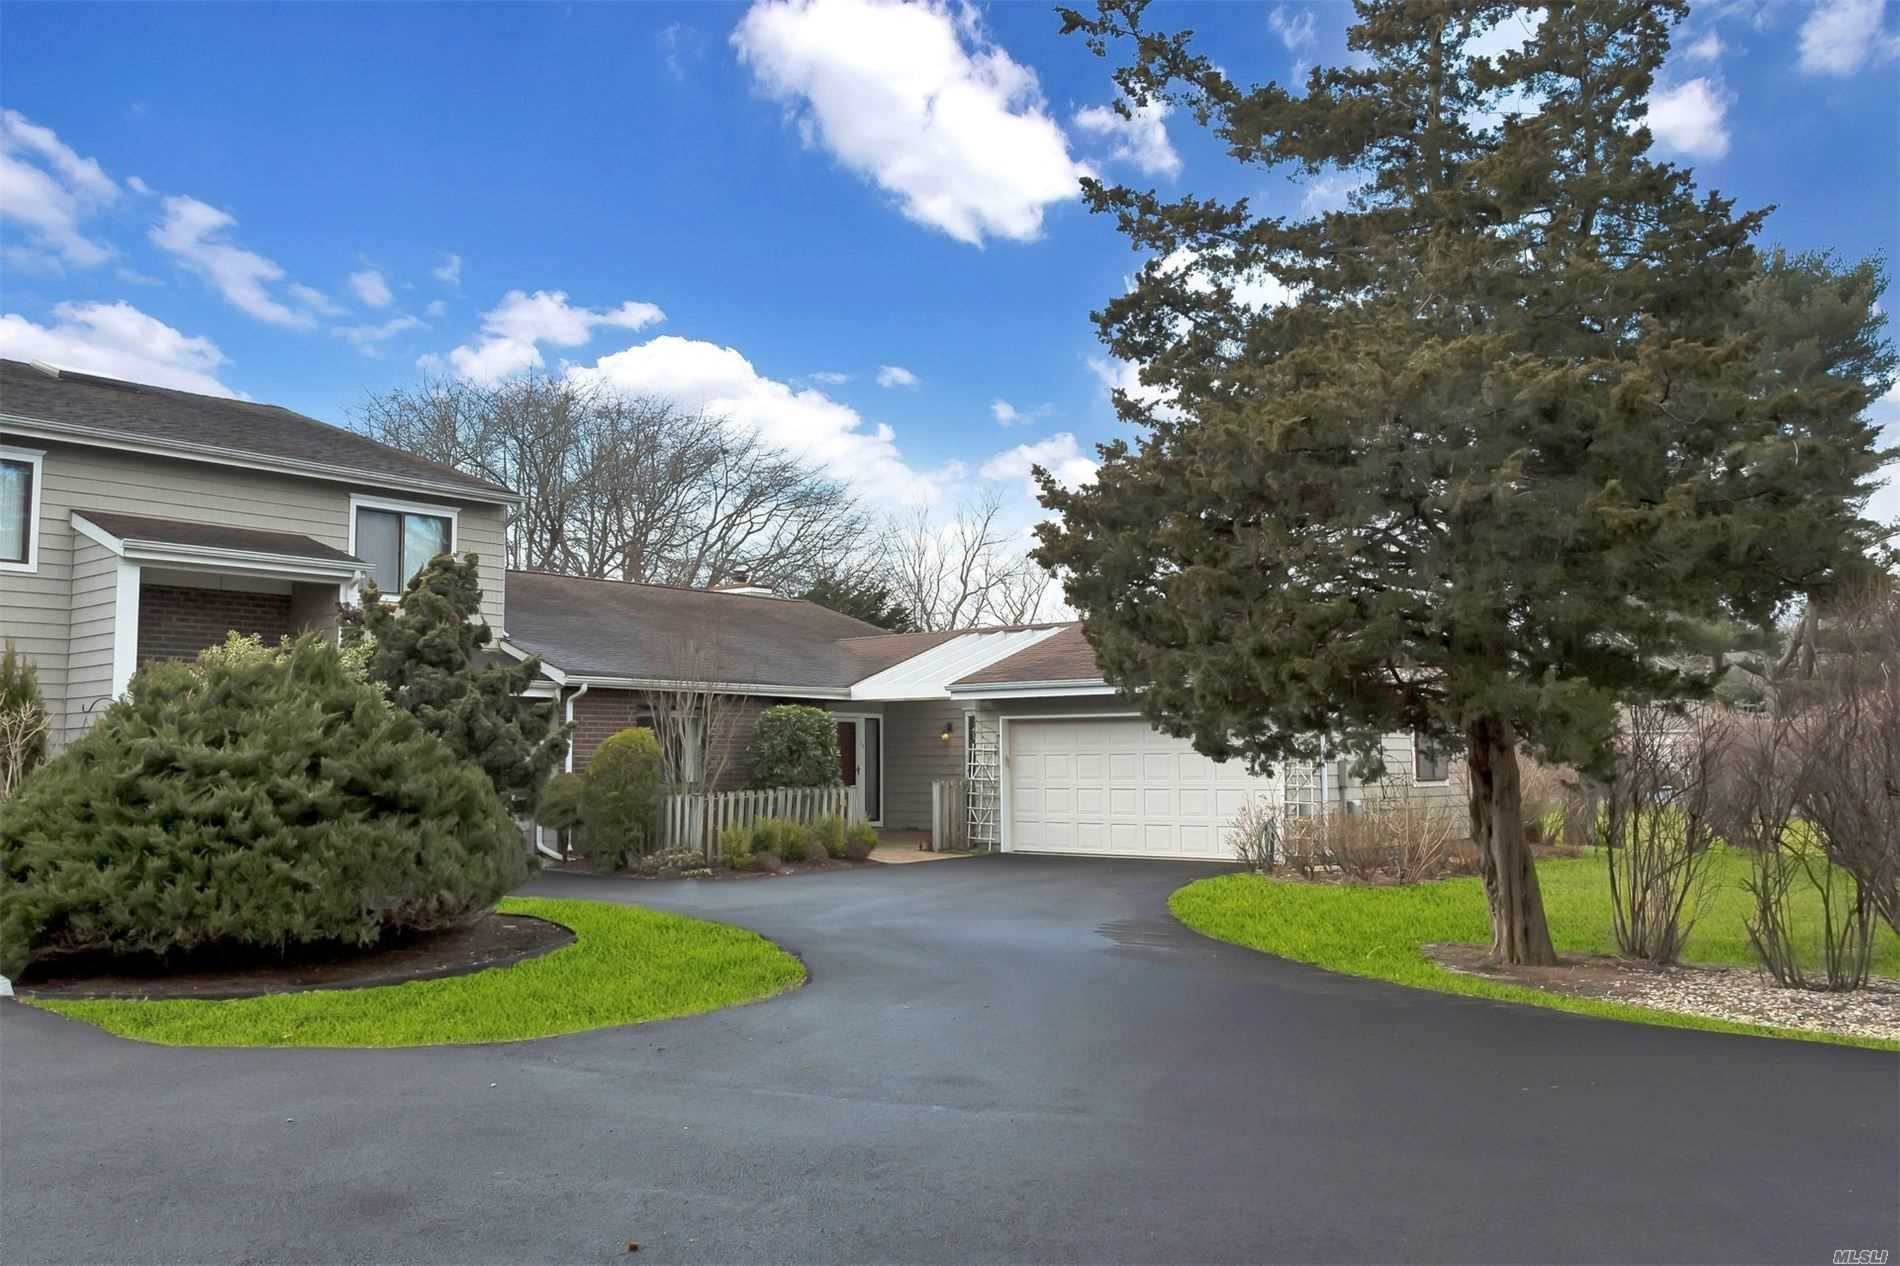 74 Boathouse Lane, Bay Shore, NY 11706 - MLS#: 3207528